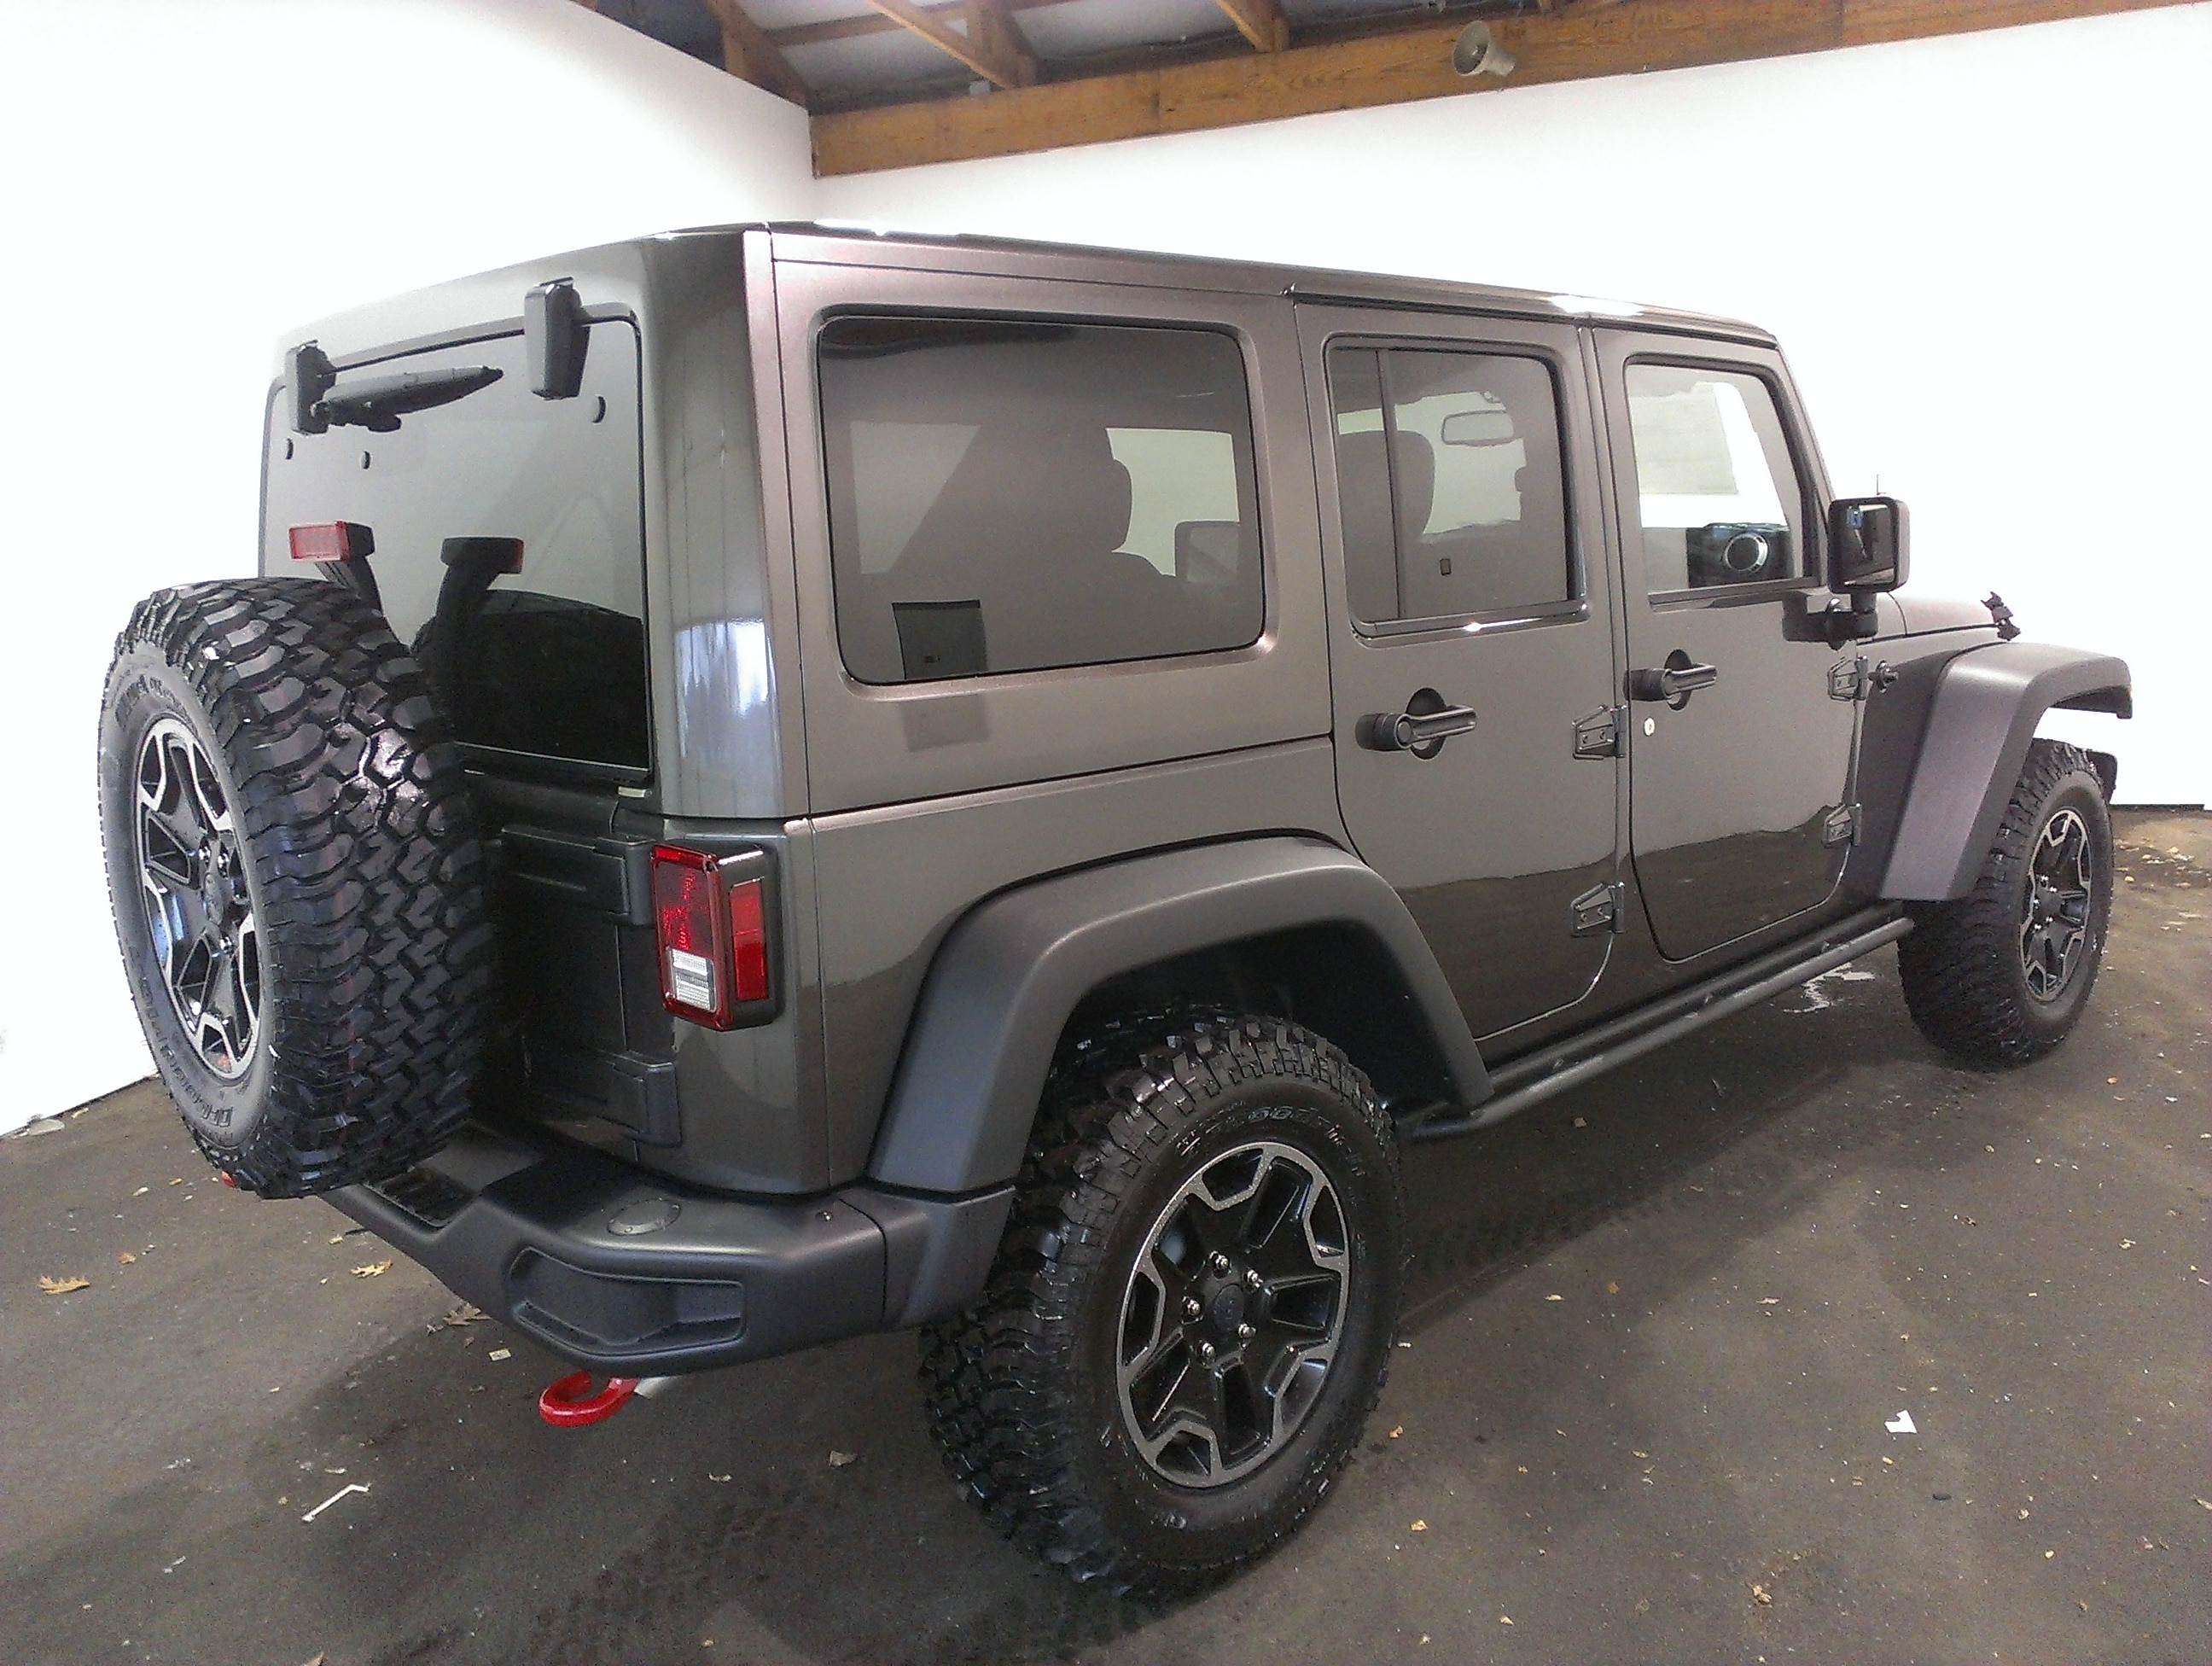 Jeep Wrangler For Sale In Pa >> New 2017 Jeep Wrangler Unlimited Rubicon 4x4 For Sale or ...